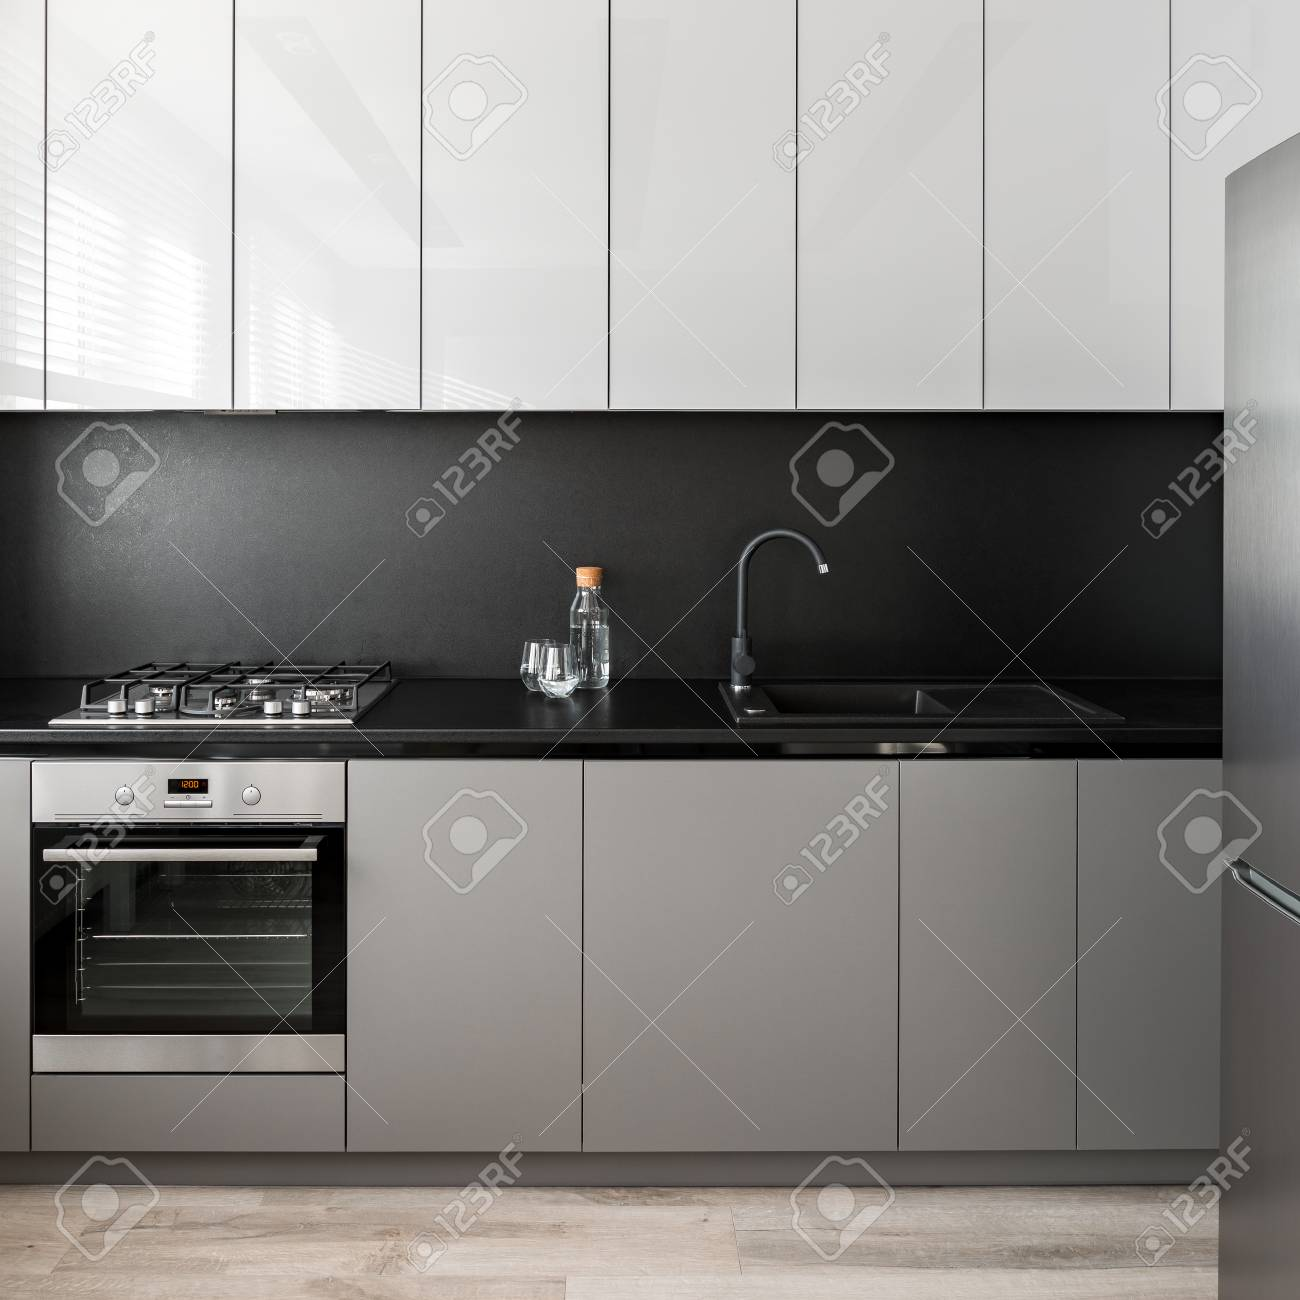 - Simple Kitchen Unit In Gray And White With Black Backsplash Stock